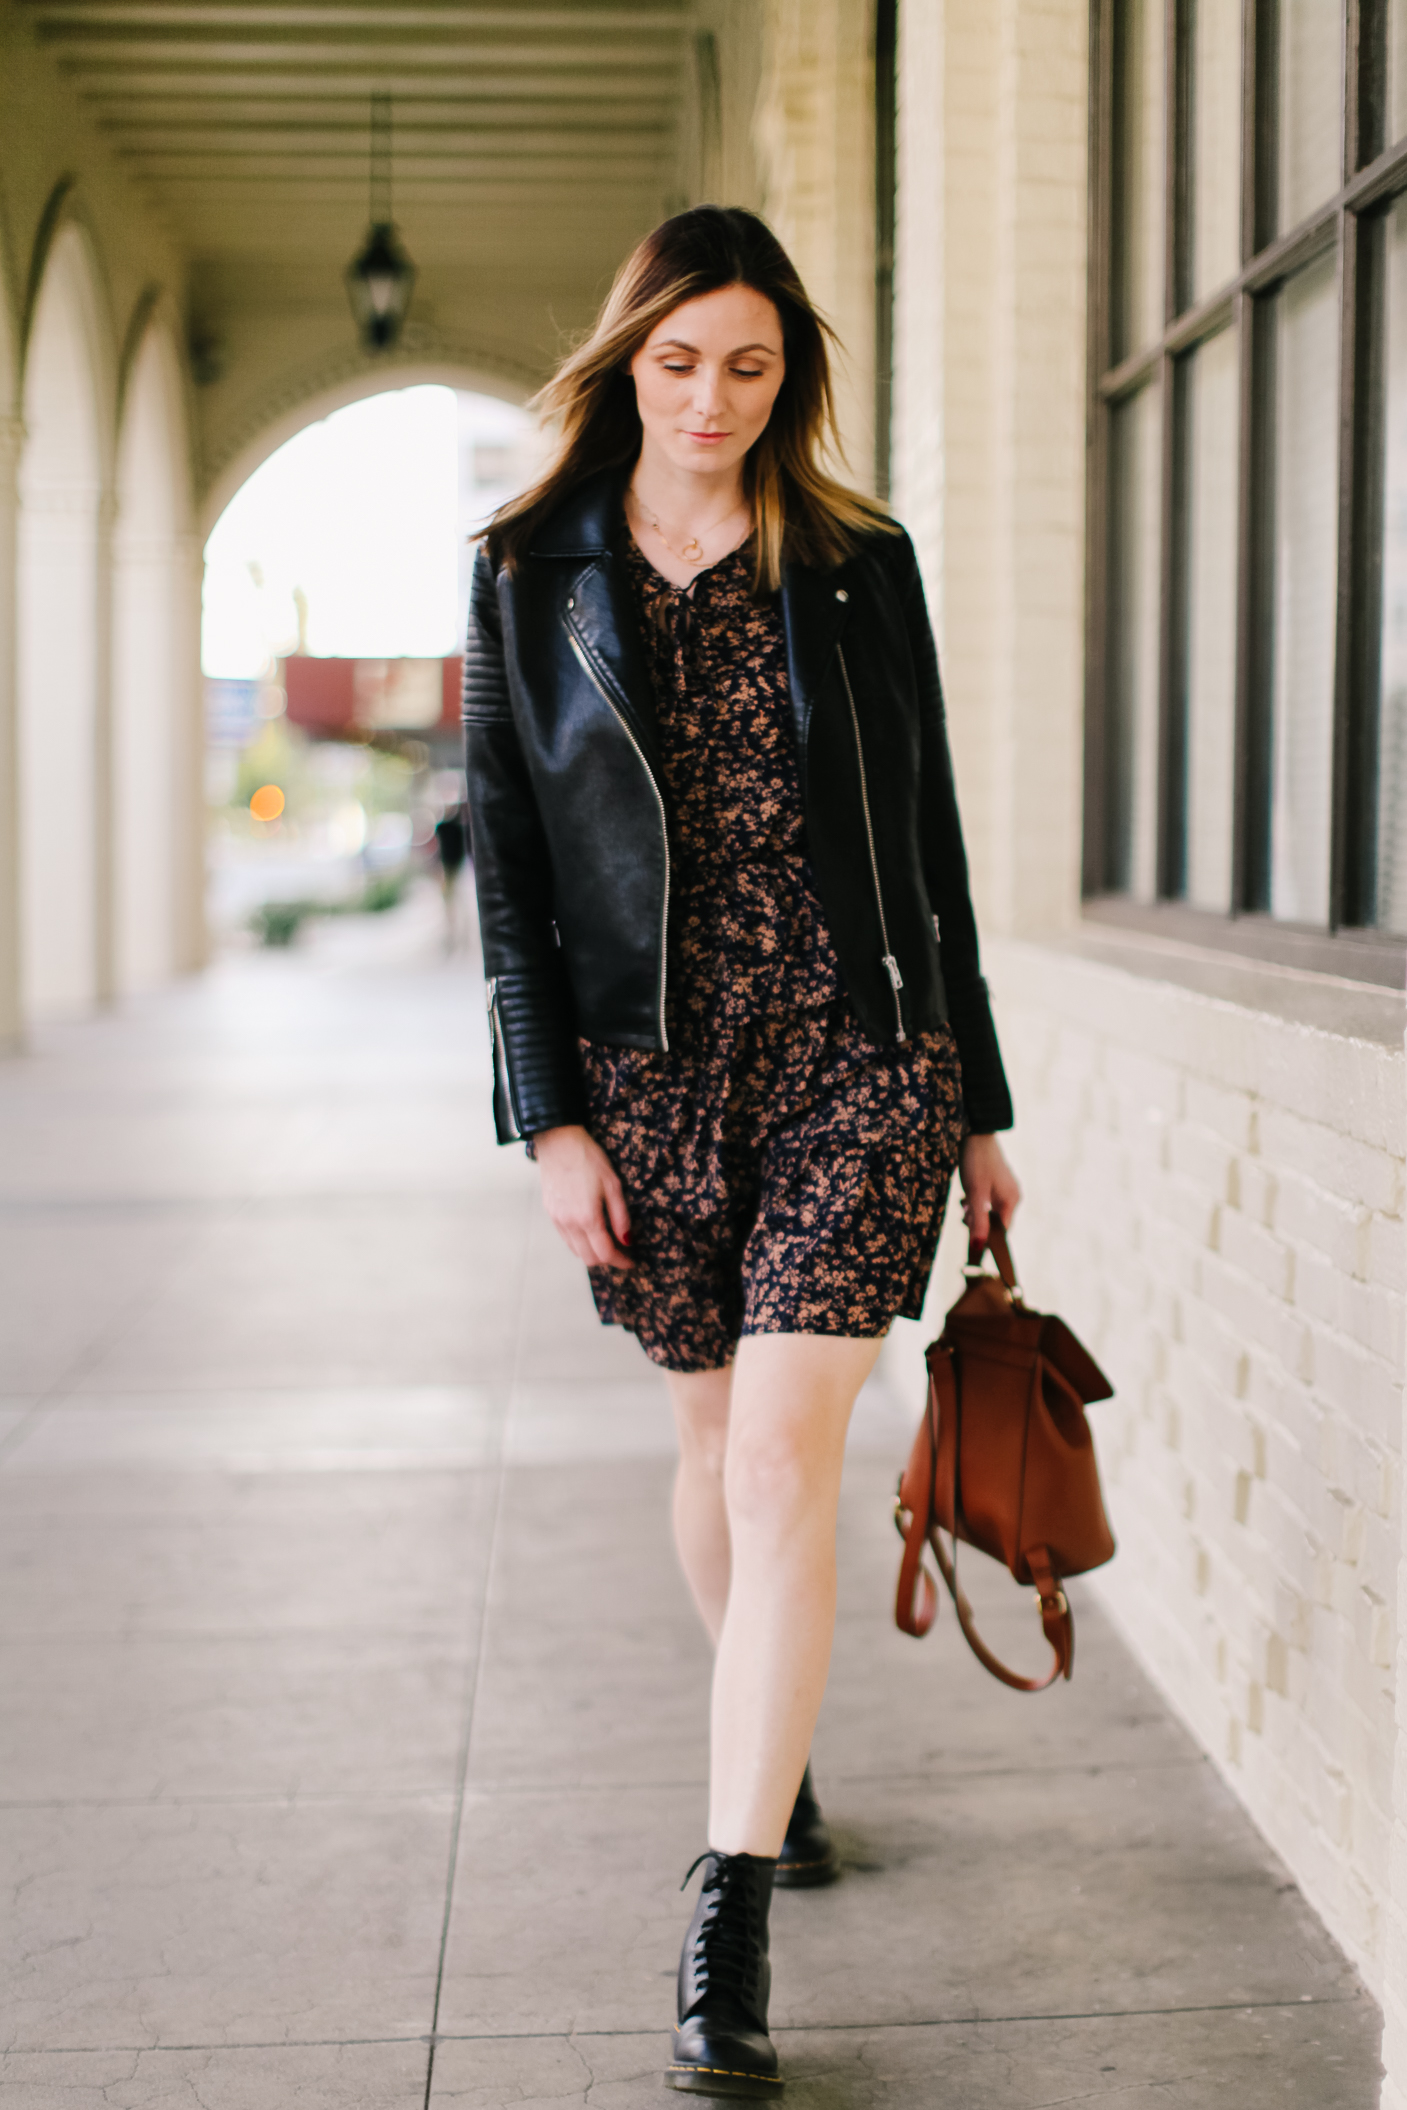 Black Floral Ruffle Dress | Floral Ruffle Dress by popular LA fashion blog, Tea Cups and Tulips: image of a woman wearing a SheIn Ditsy Floral Layered Ruffle Hem A-line Dress, leather jacket, and Dr Martens Vegan 101 6 eye boots in black.